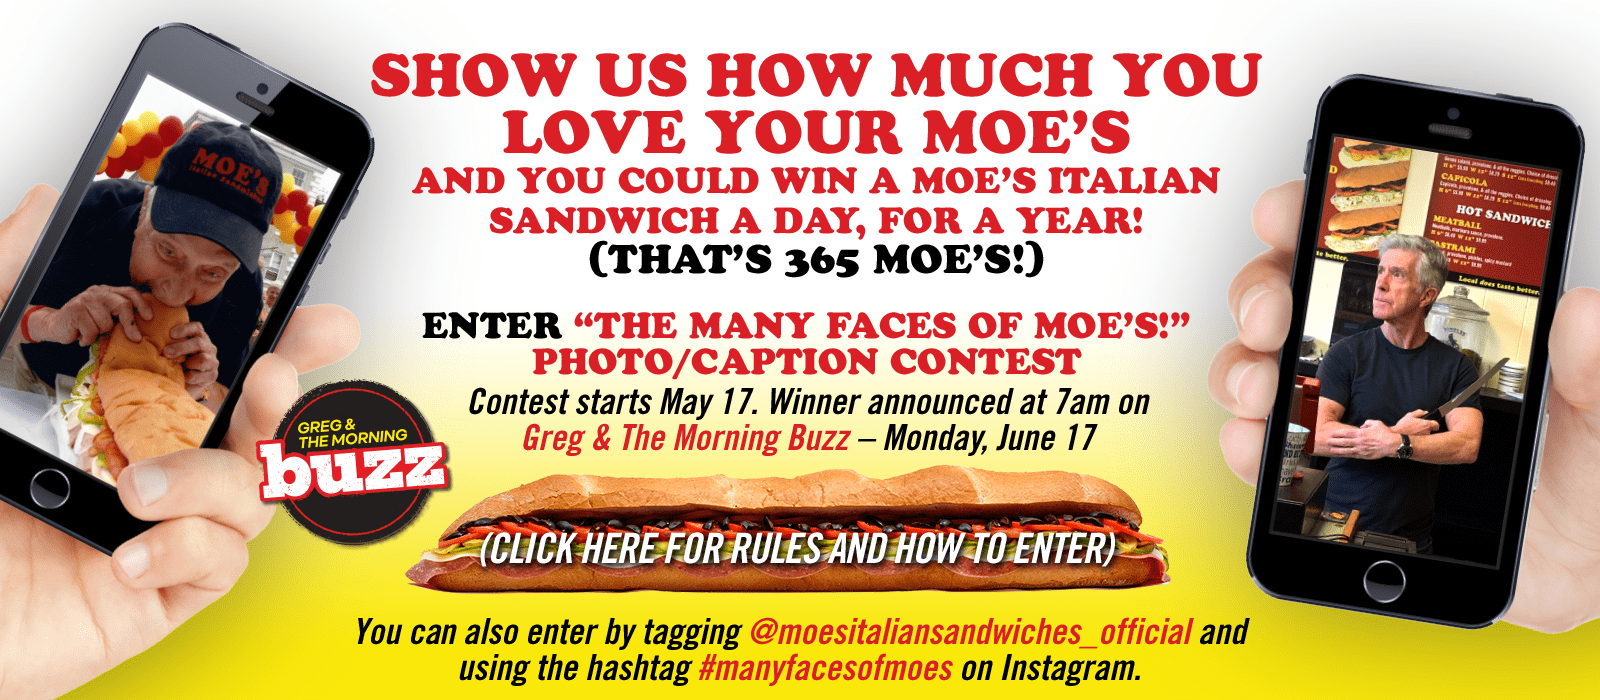 Show Us How Much You Love Your Moe's contest flyer